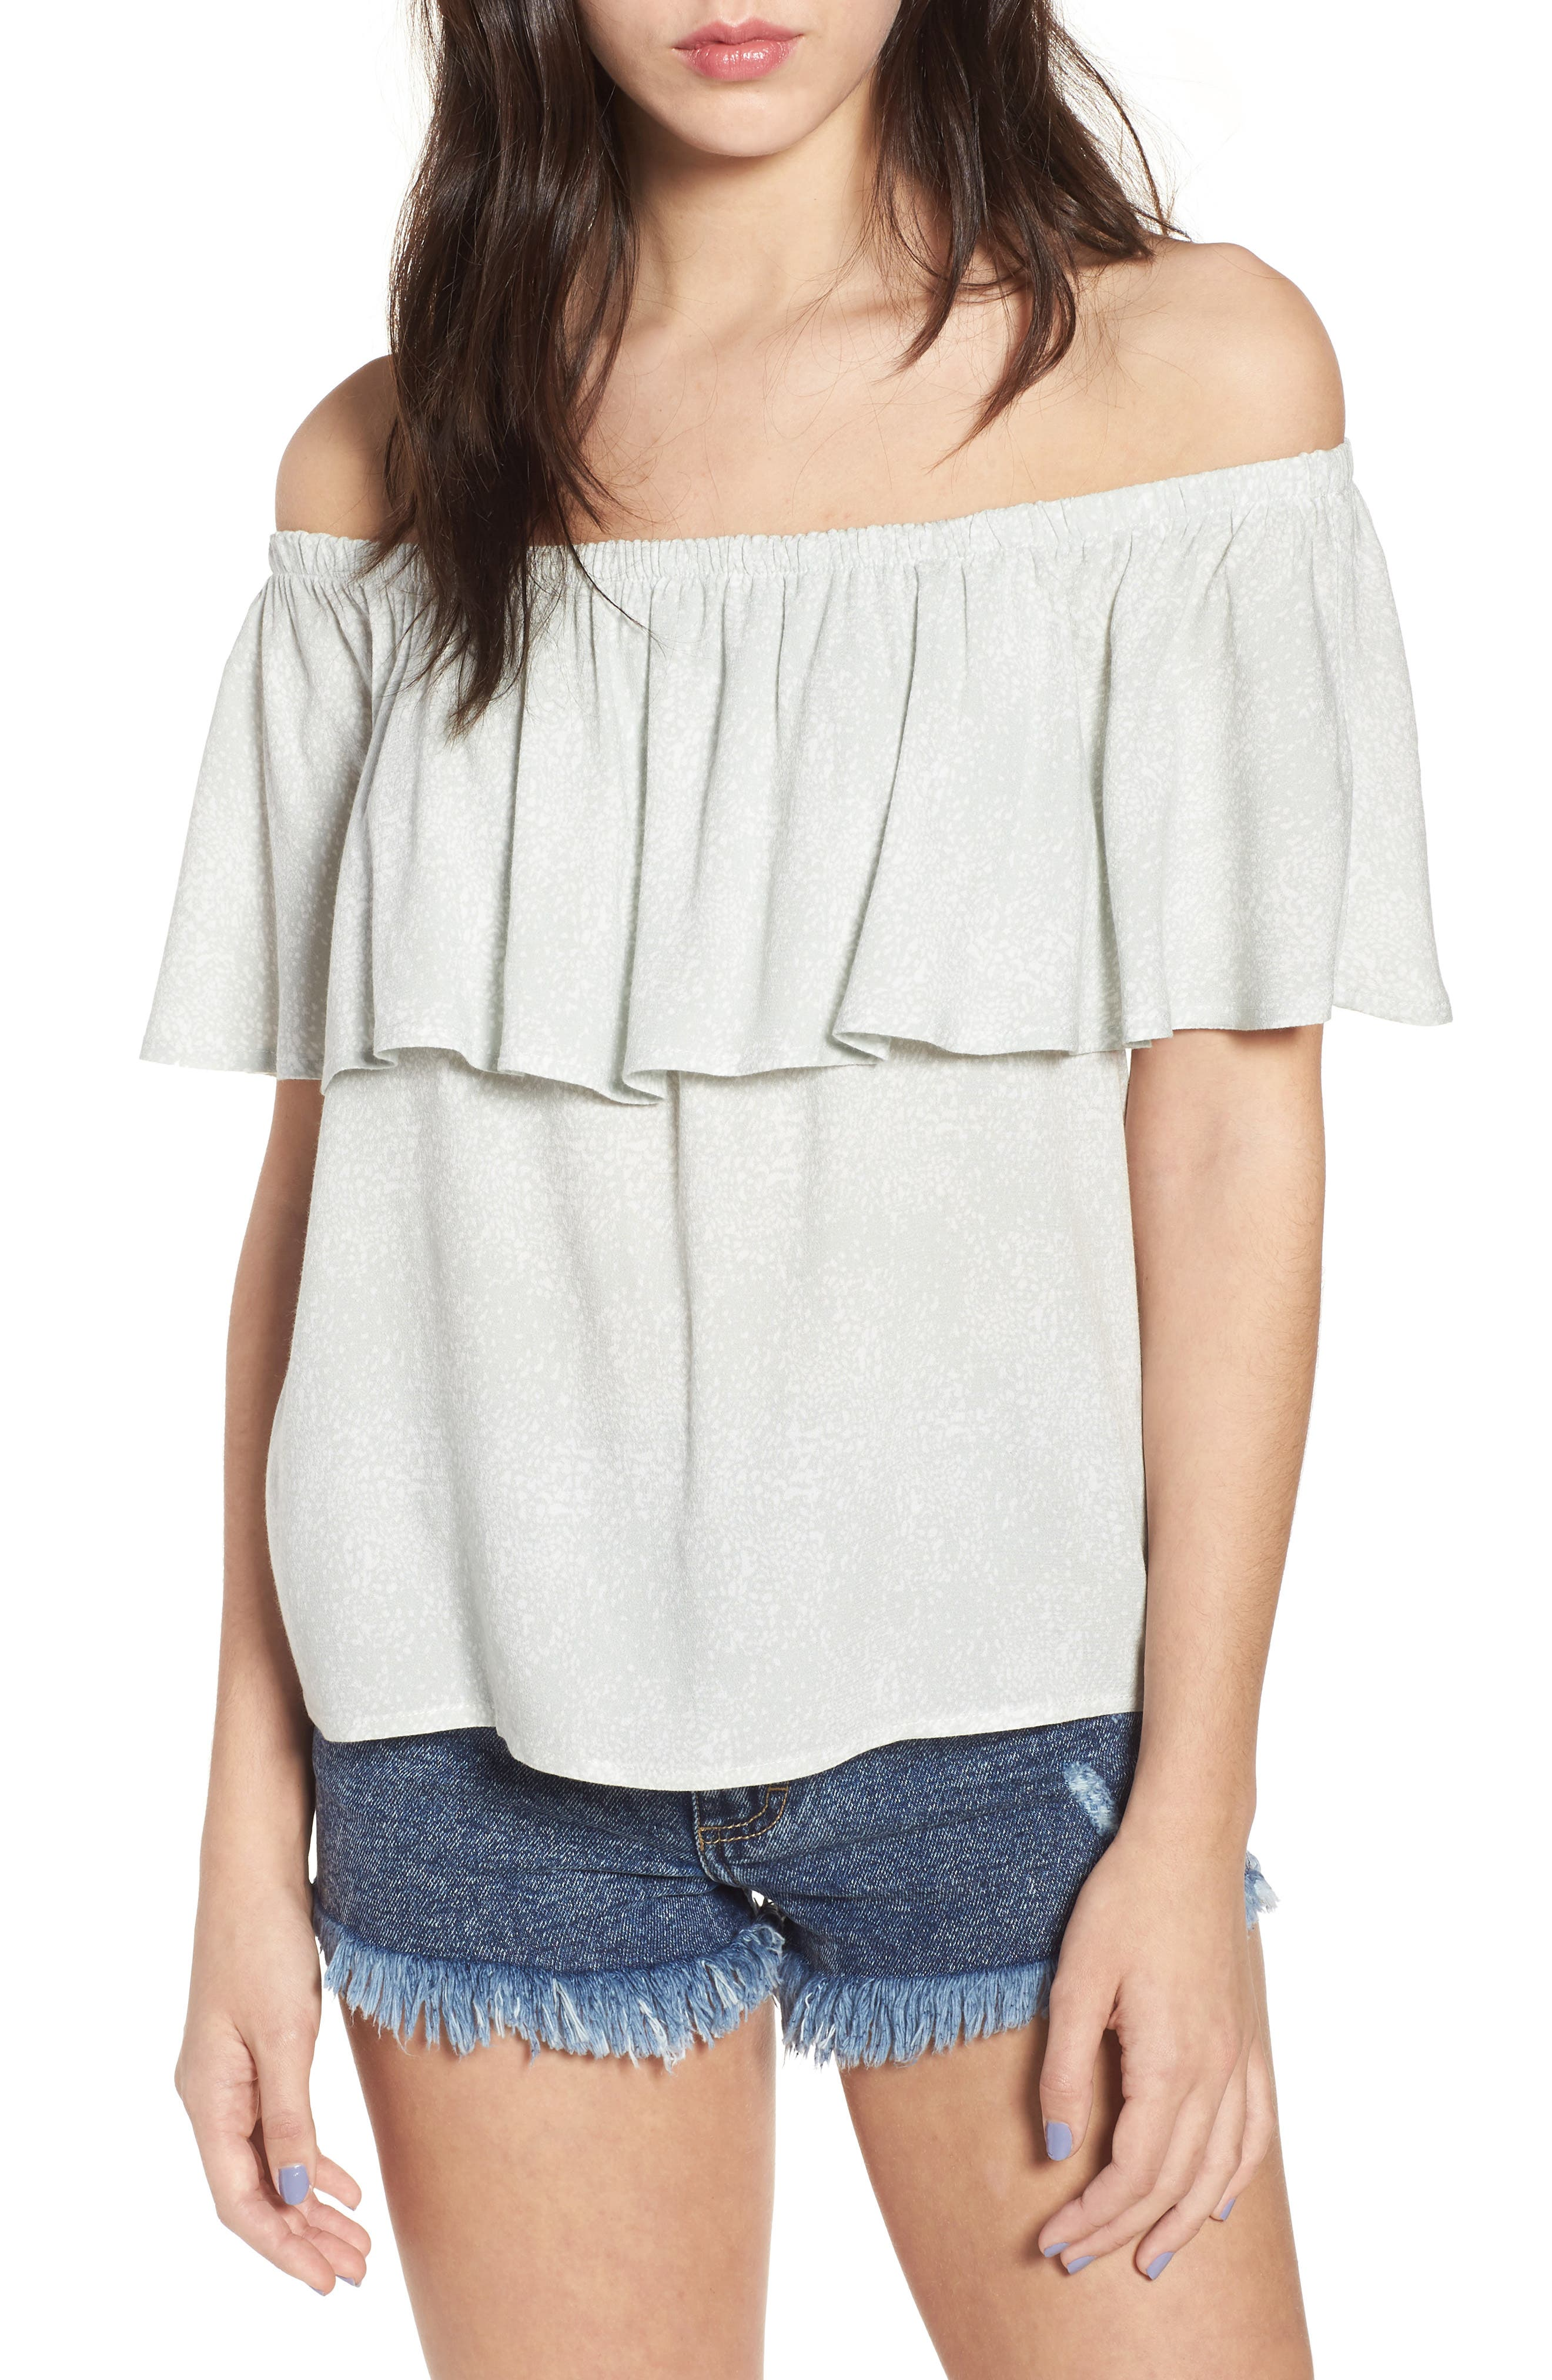 Alternate Image 1 Selected - Lira Clothing Mary Off the Shoulder Top